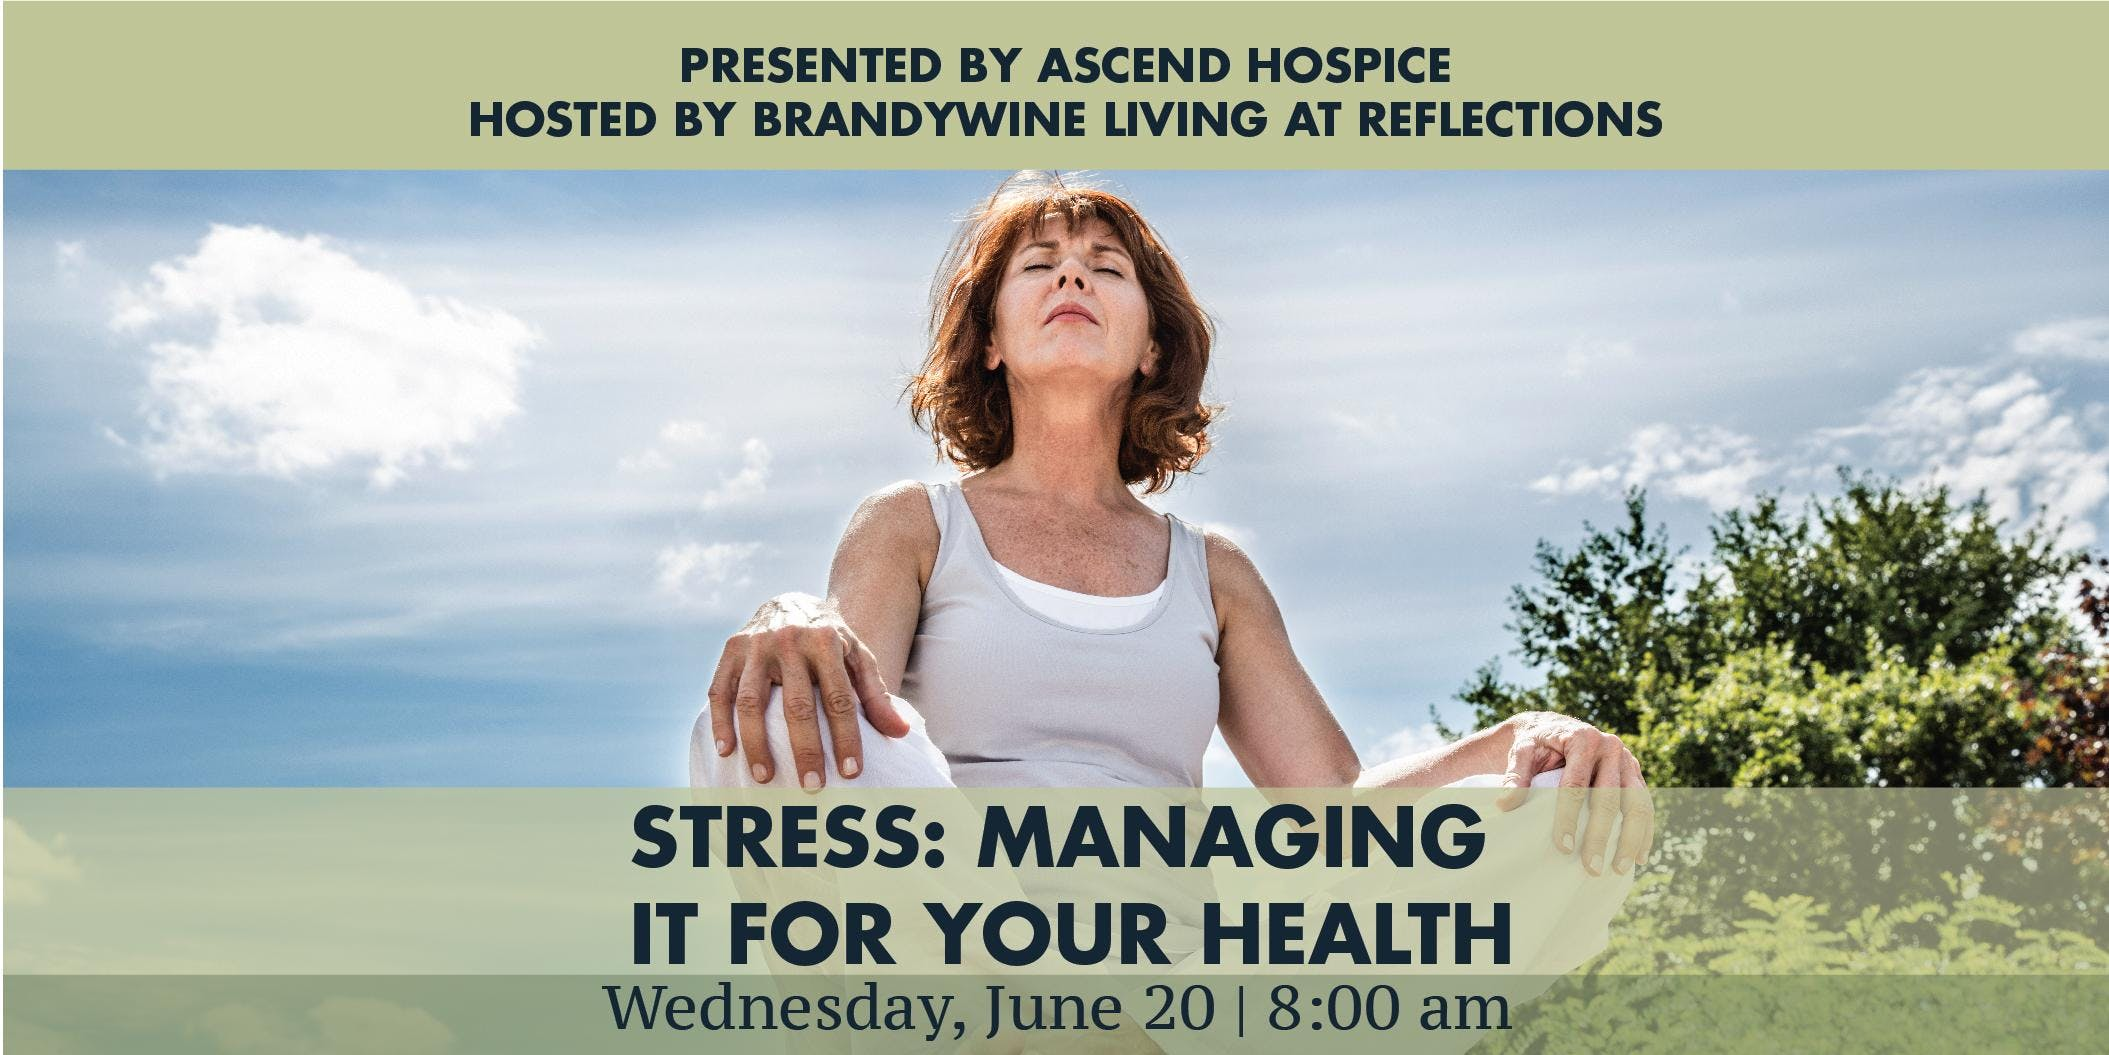 CEU - Stress: Managing It For Your Health